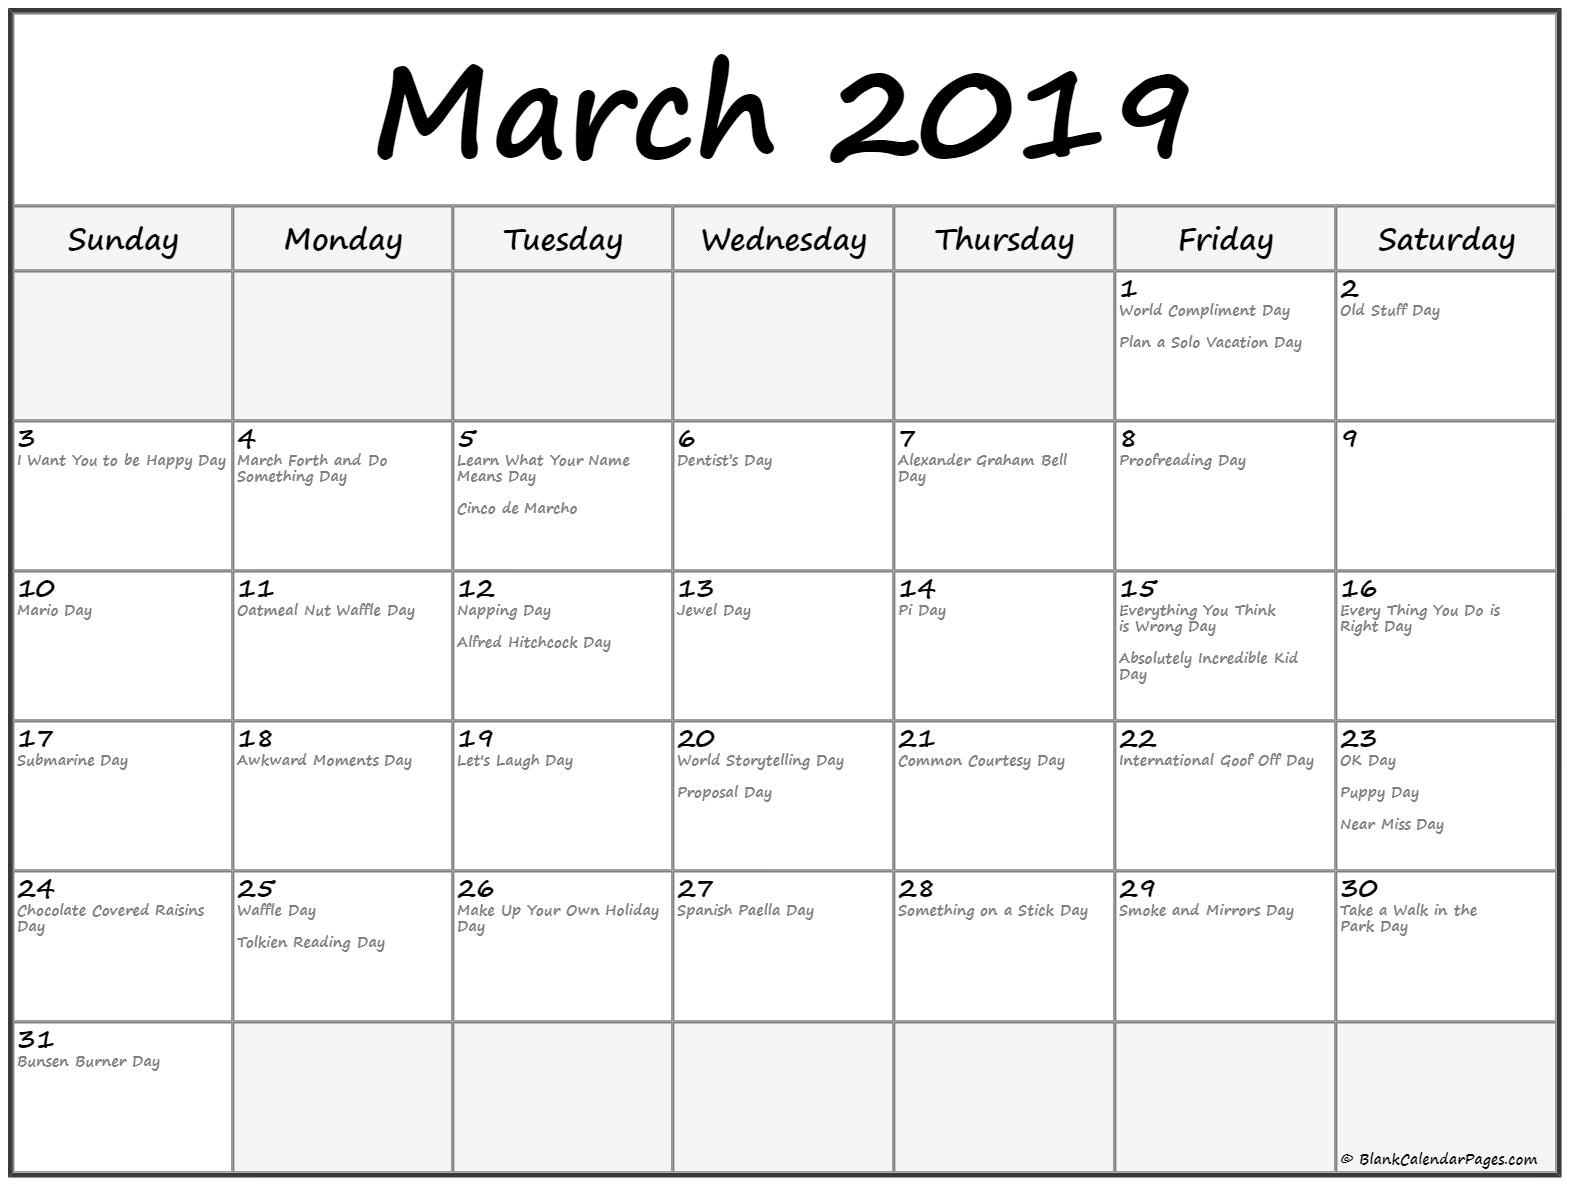 March 2019 Federal Holidays Calendar